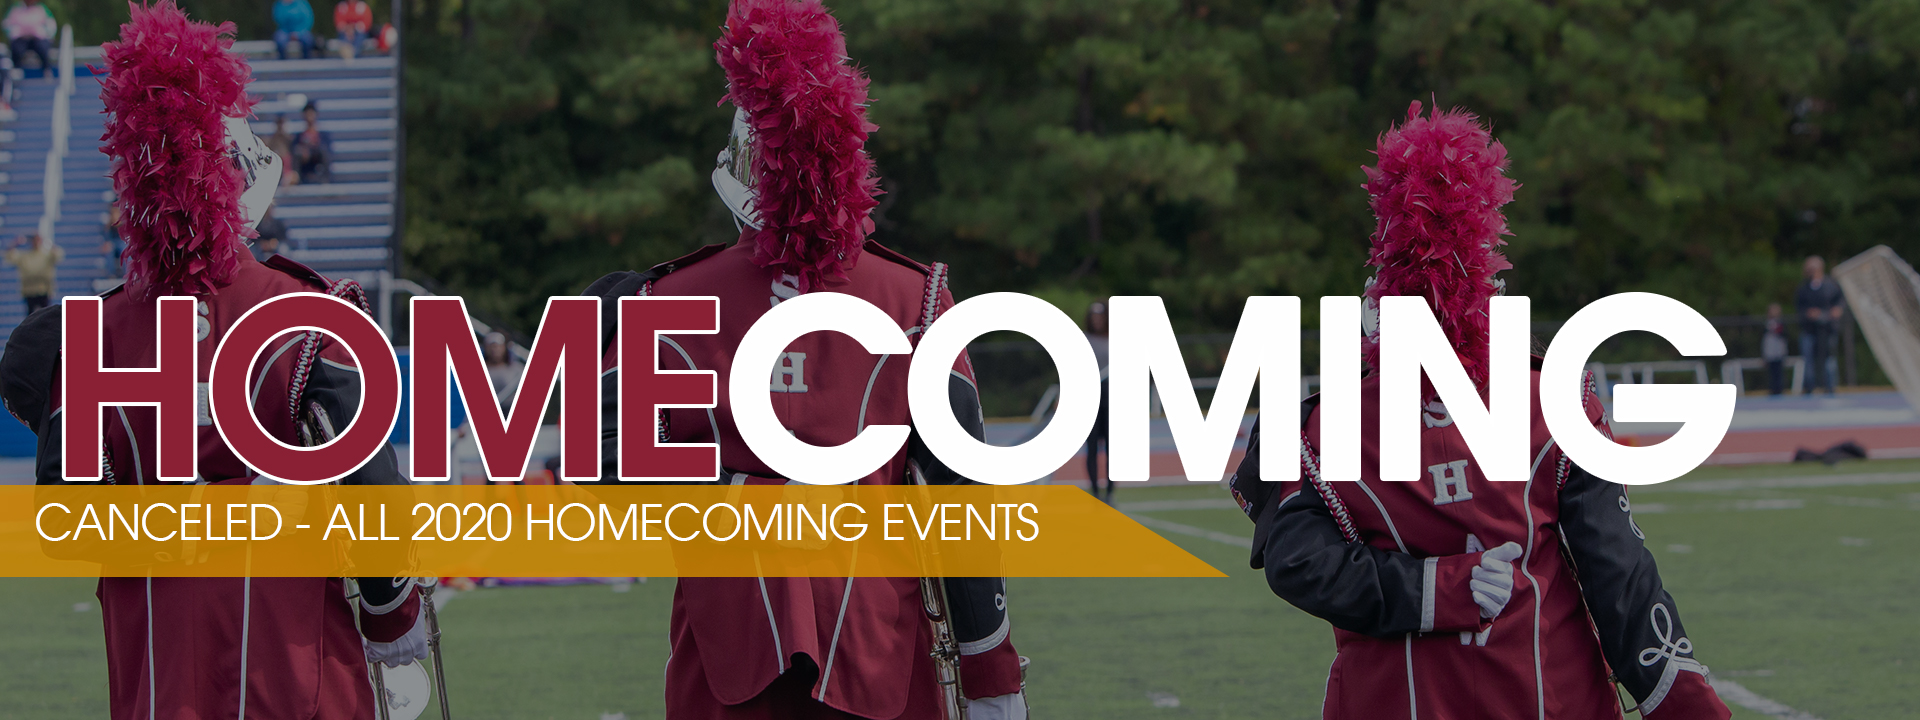 Welcome Home - Homecoming October 21-28